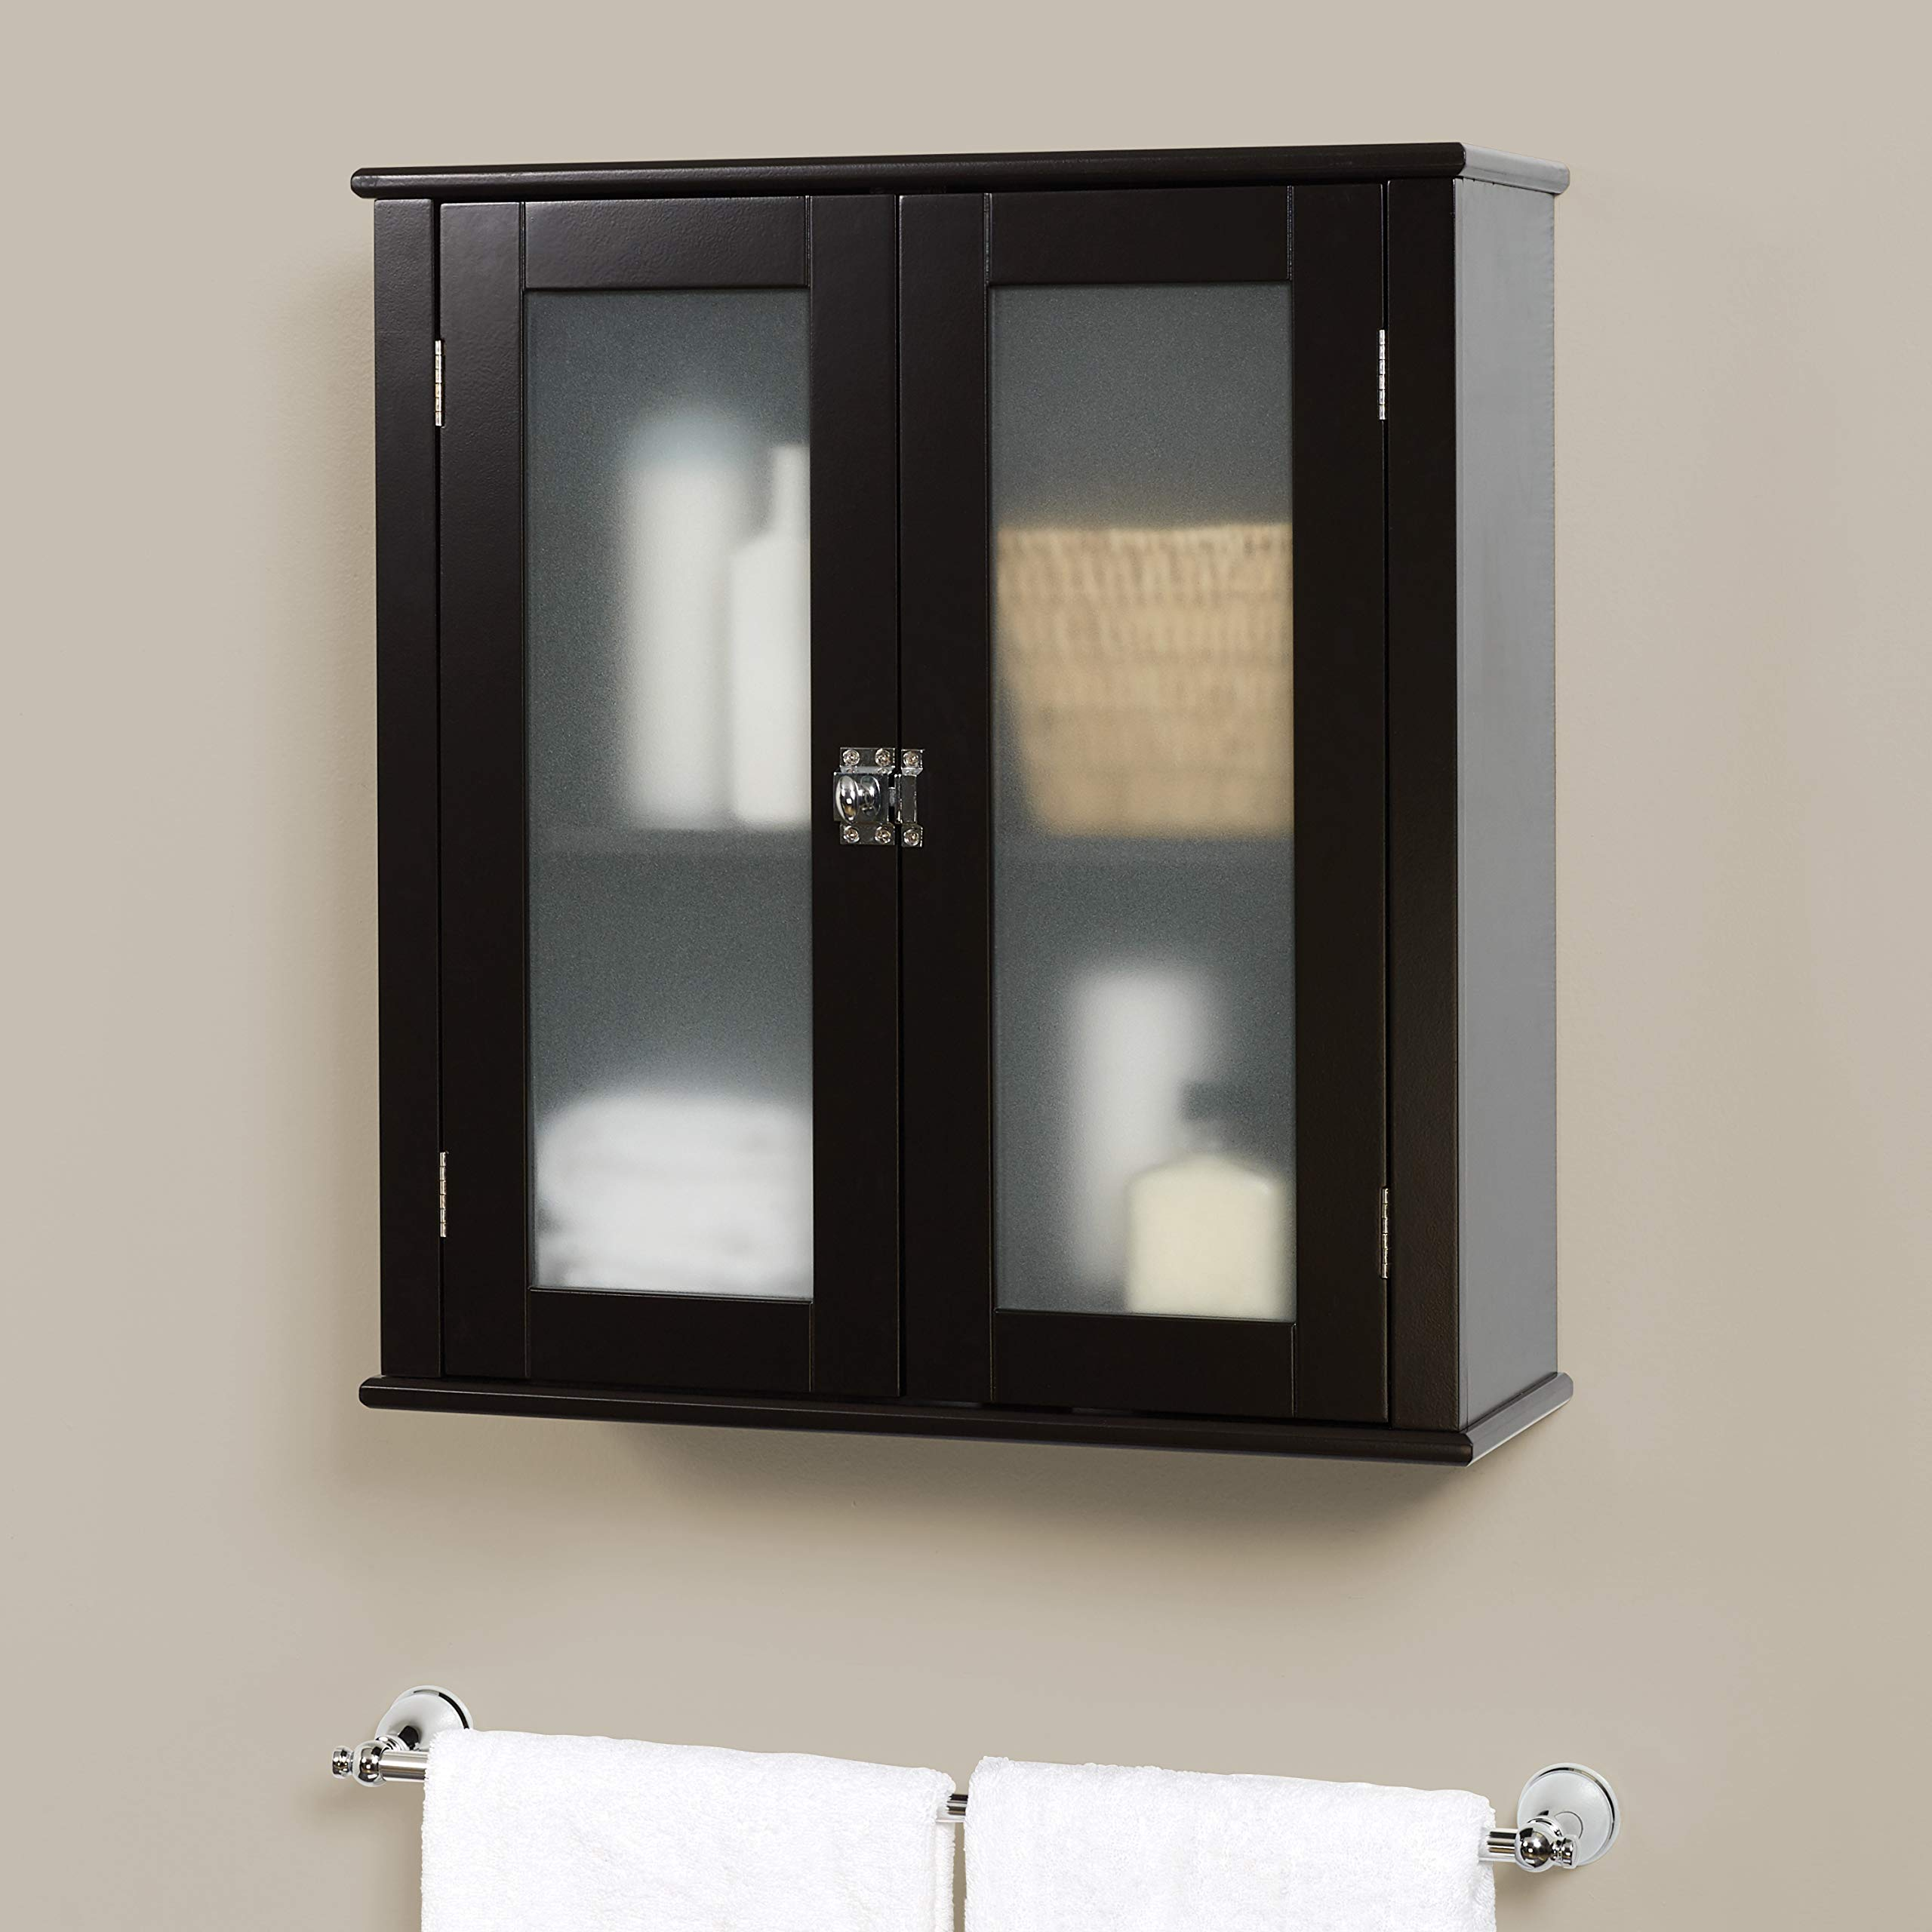 Zenna Home Classic Wall Cabinet, Espresso by Zenna Home (Image #2)